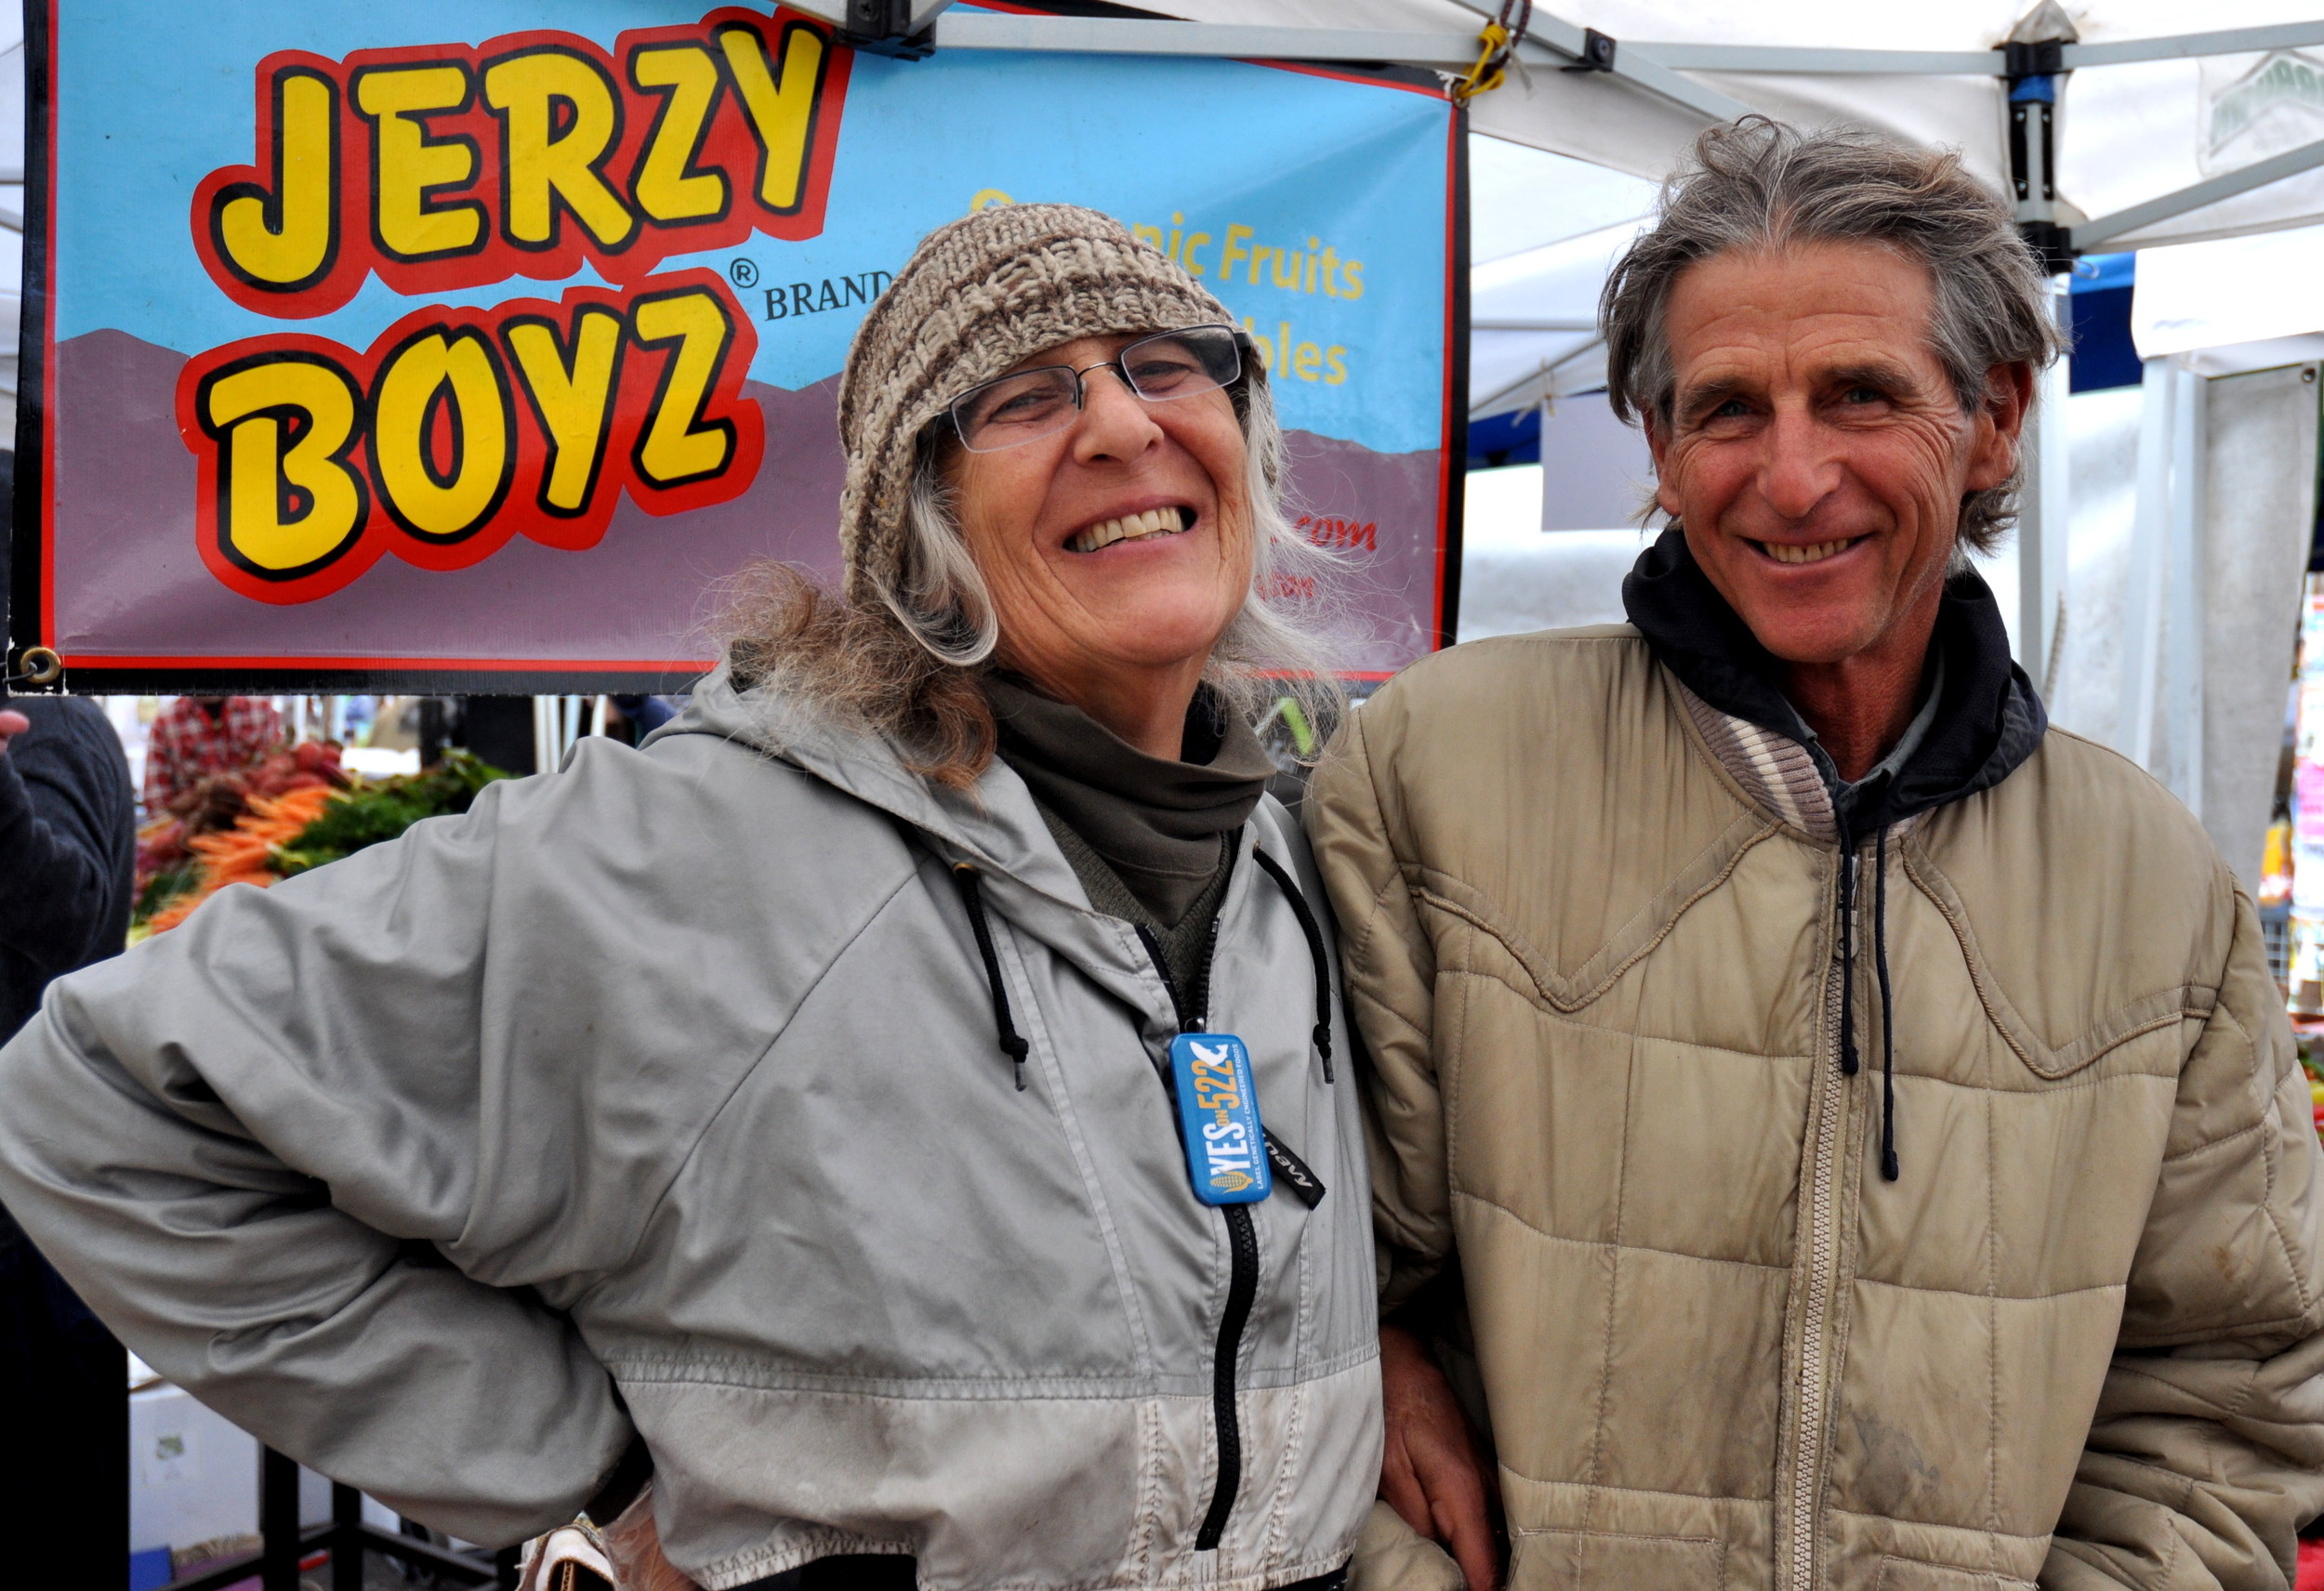 Wynne Weinreb and Scott Beaton of Jerzy Boyz Farm support I-522. Photo copyright 2013 by Zachary D. Lyons.